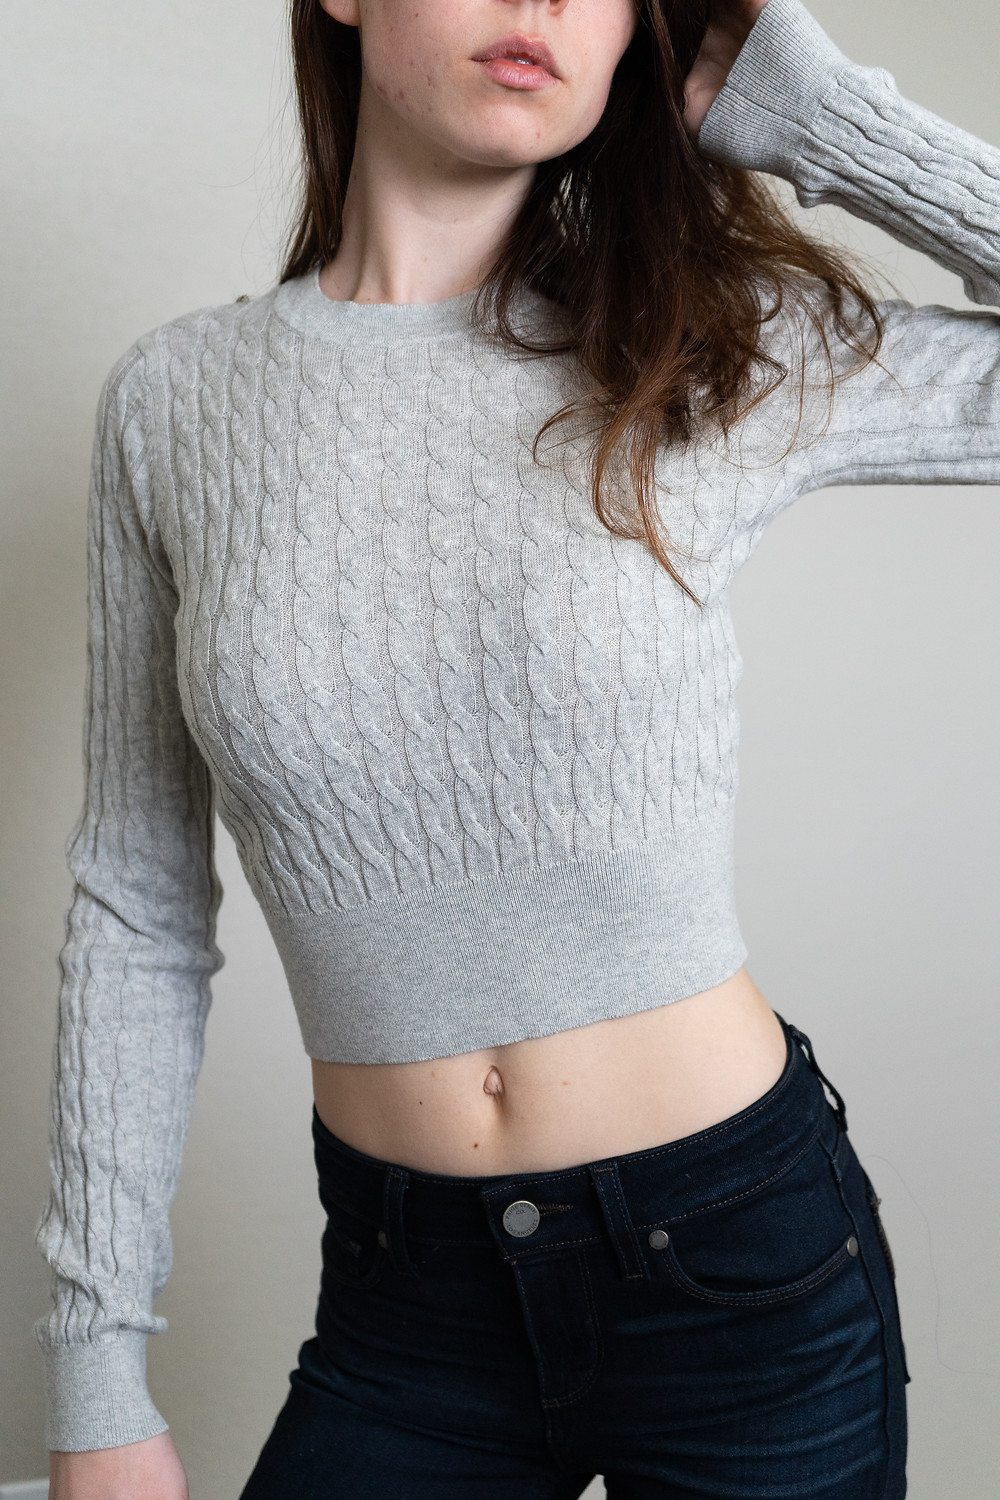 Morgan pegnone wearing a knit crop top cindy sweater by sundays best at aritzia with model wearing dark indigo paige jeans